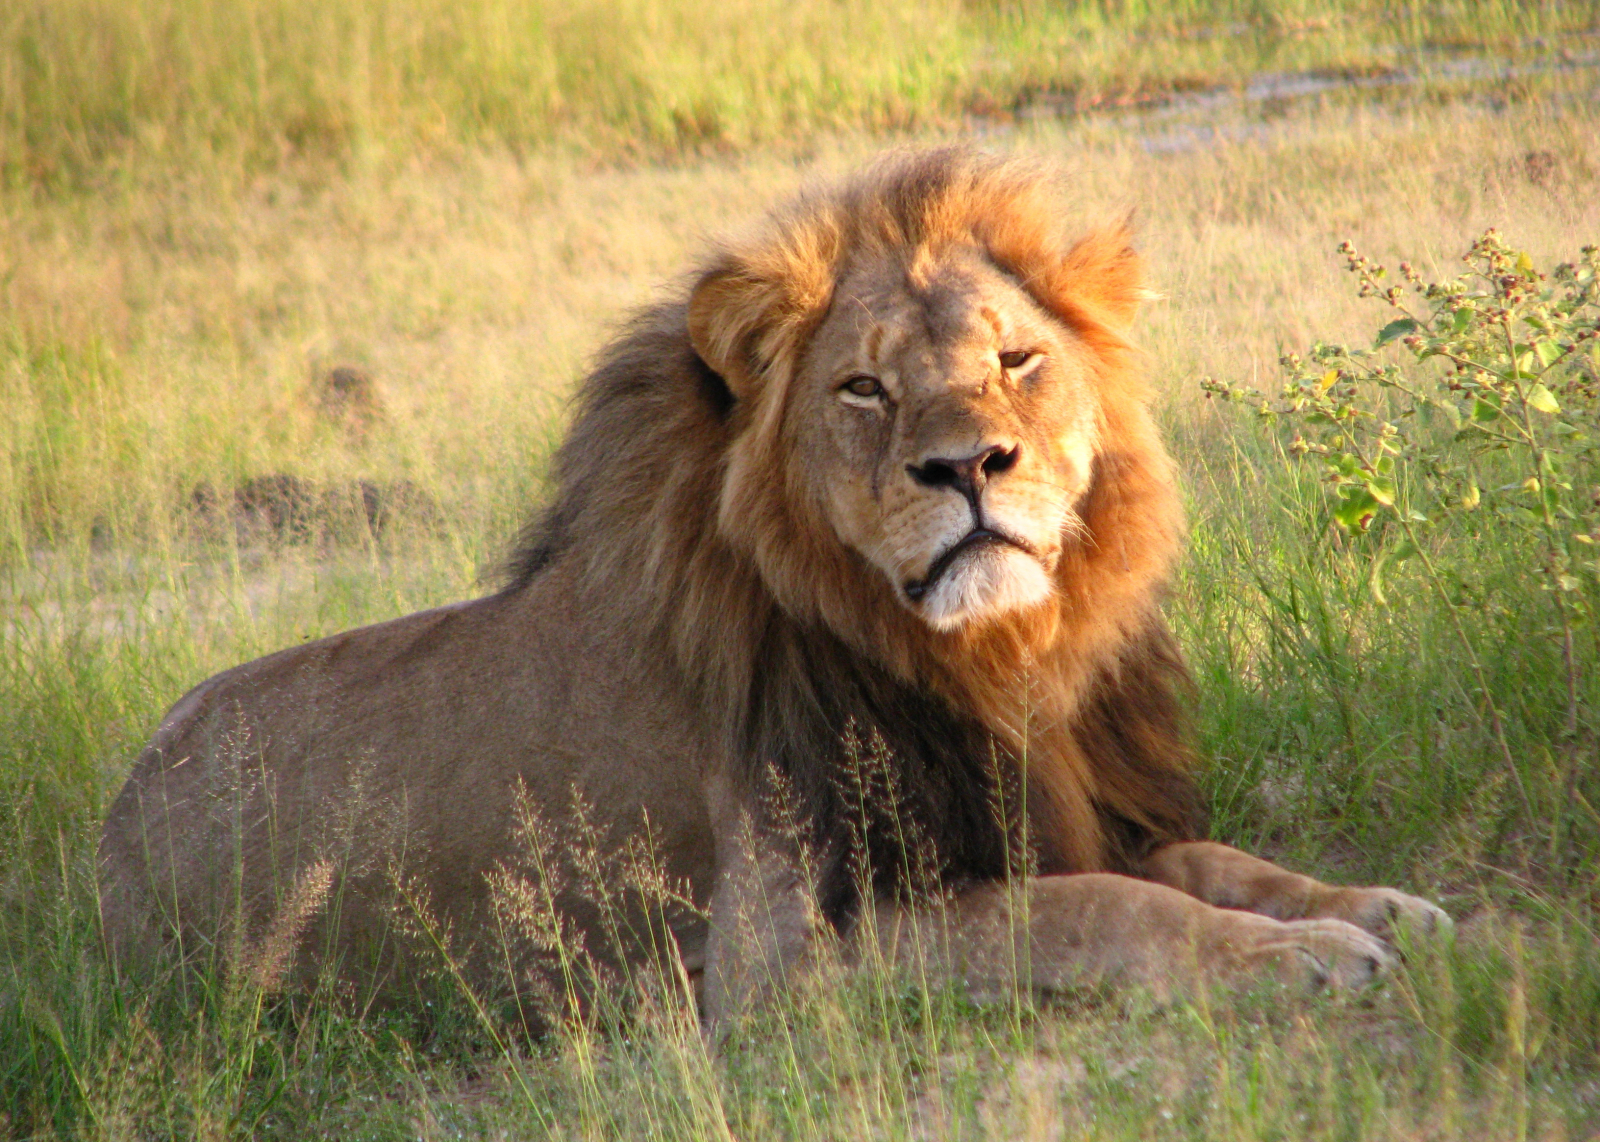 As international trophy hunting expo kicks off, the ethics